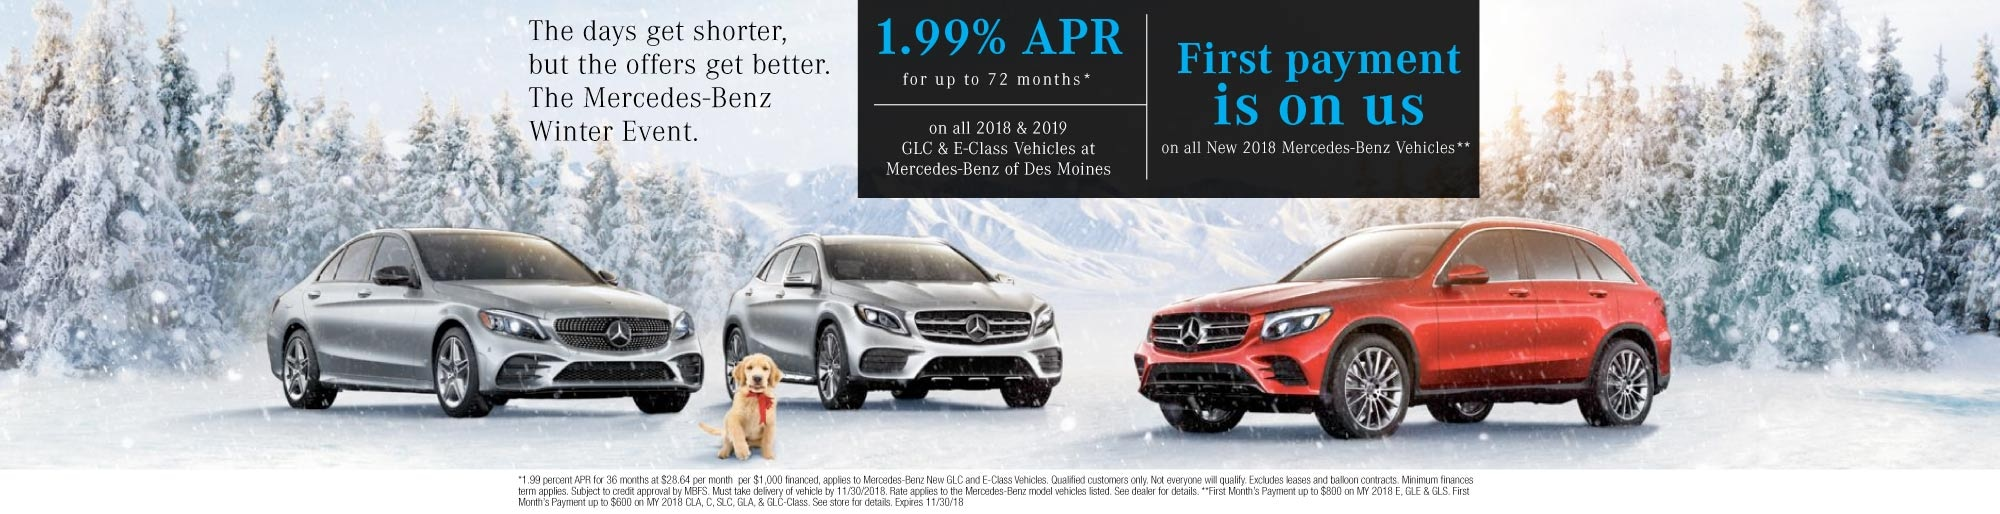 New Mercedes-Benz & Used Car Dealership near Des Moines ...